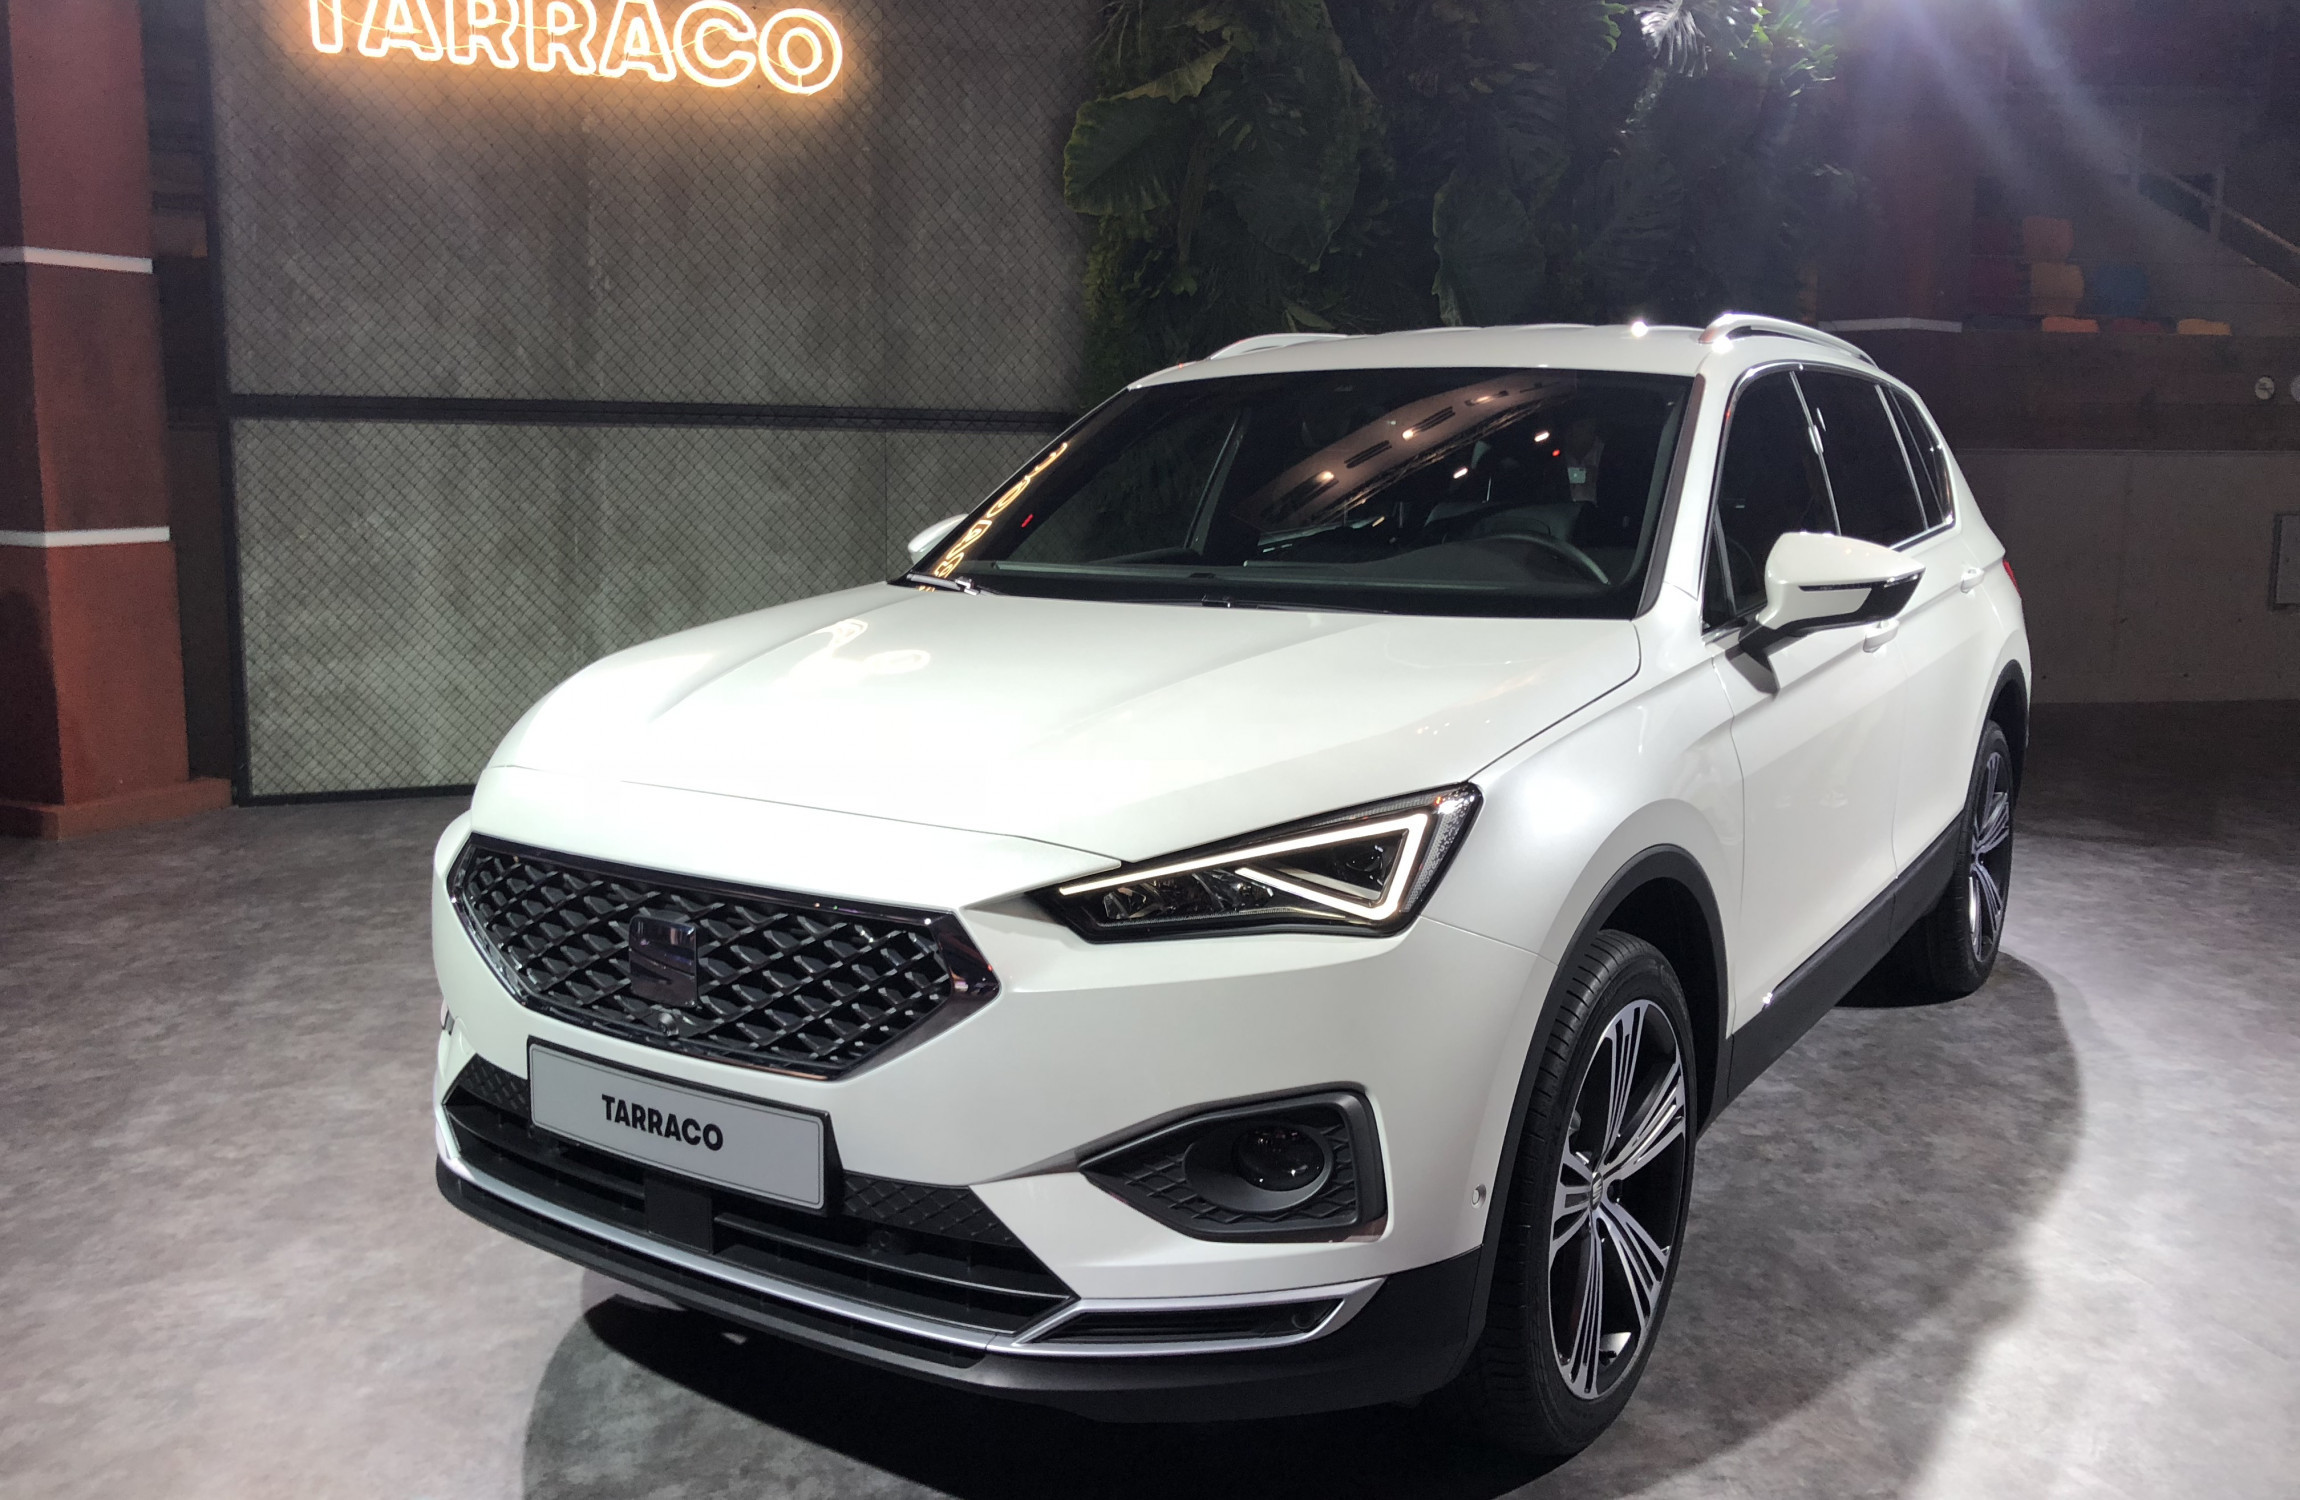 Seat Suv Range Seat Unveils Its All New Tarraco Suv The Biggest In Its